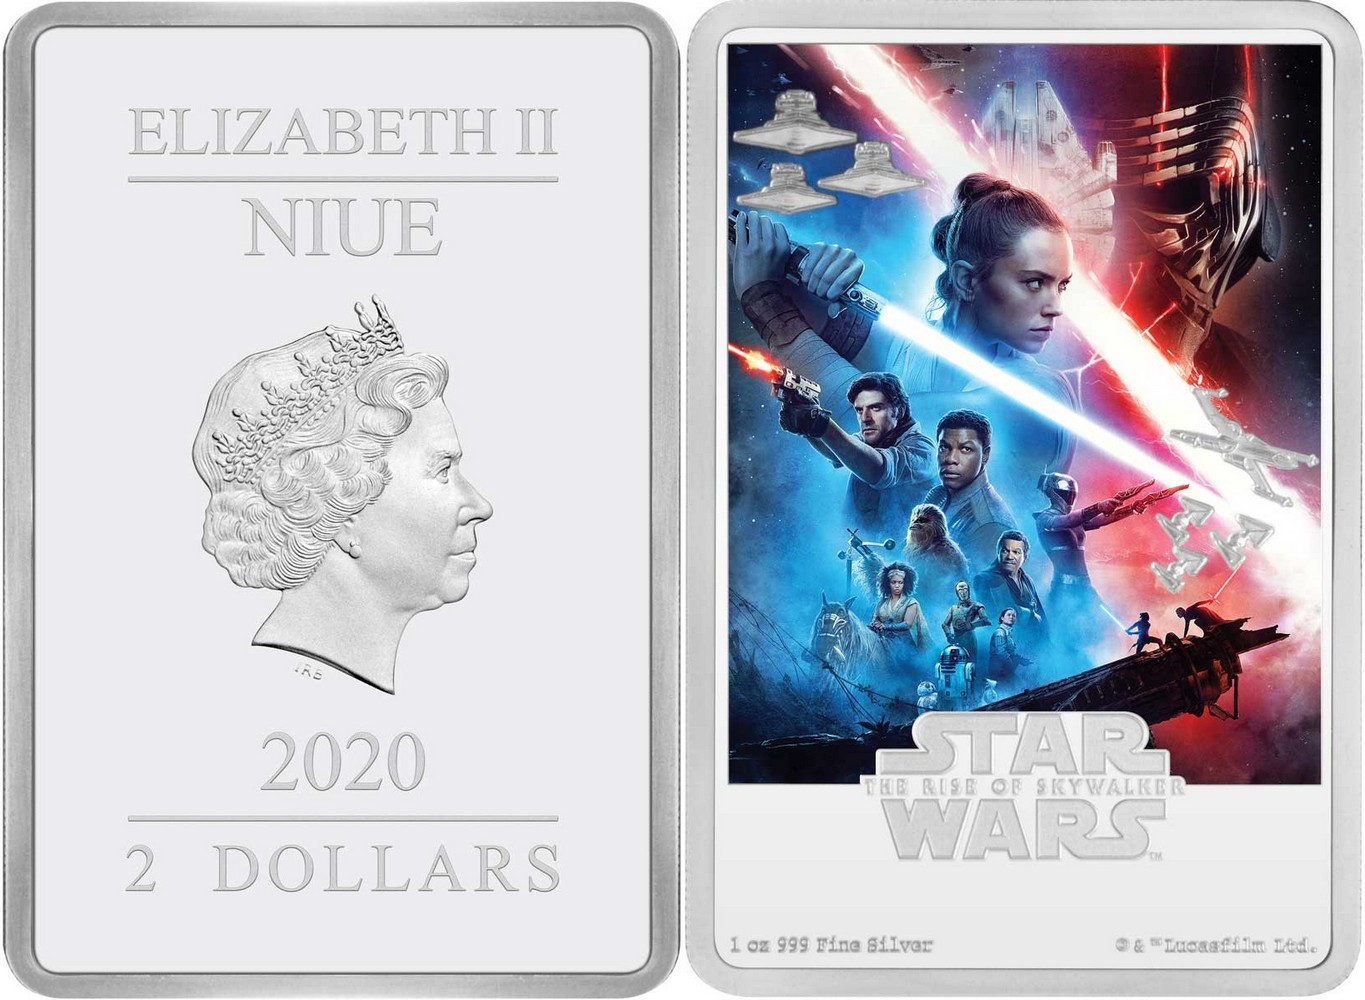 niue-2020-star-wars-lascension-de-skywalker